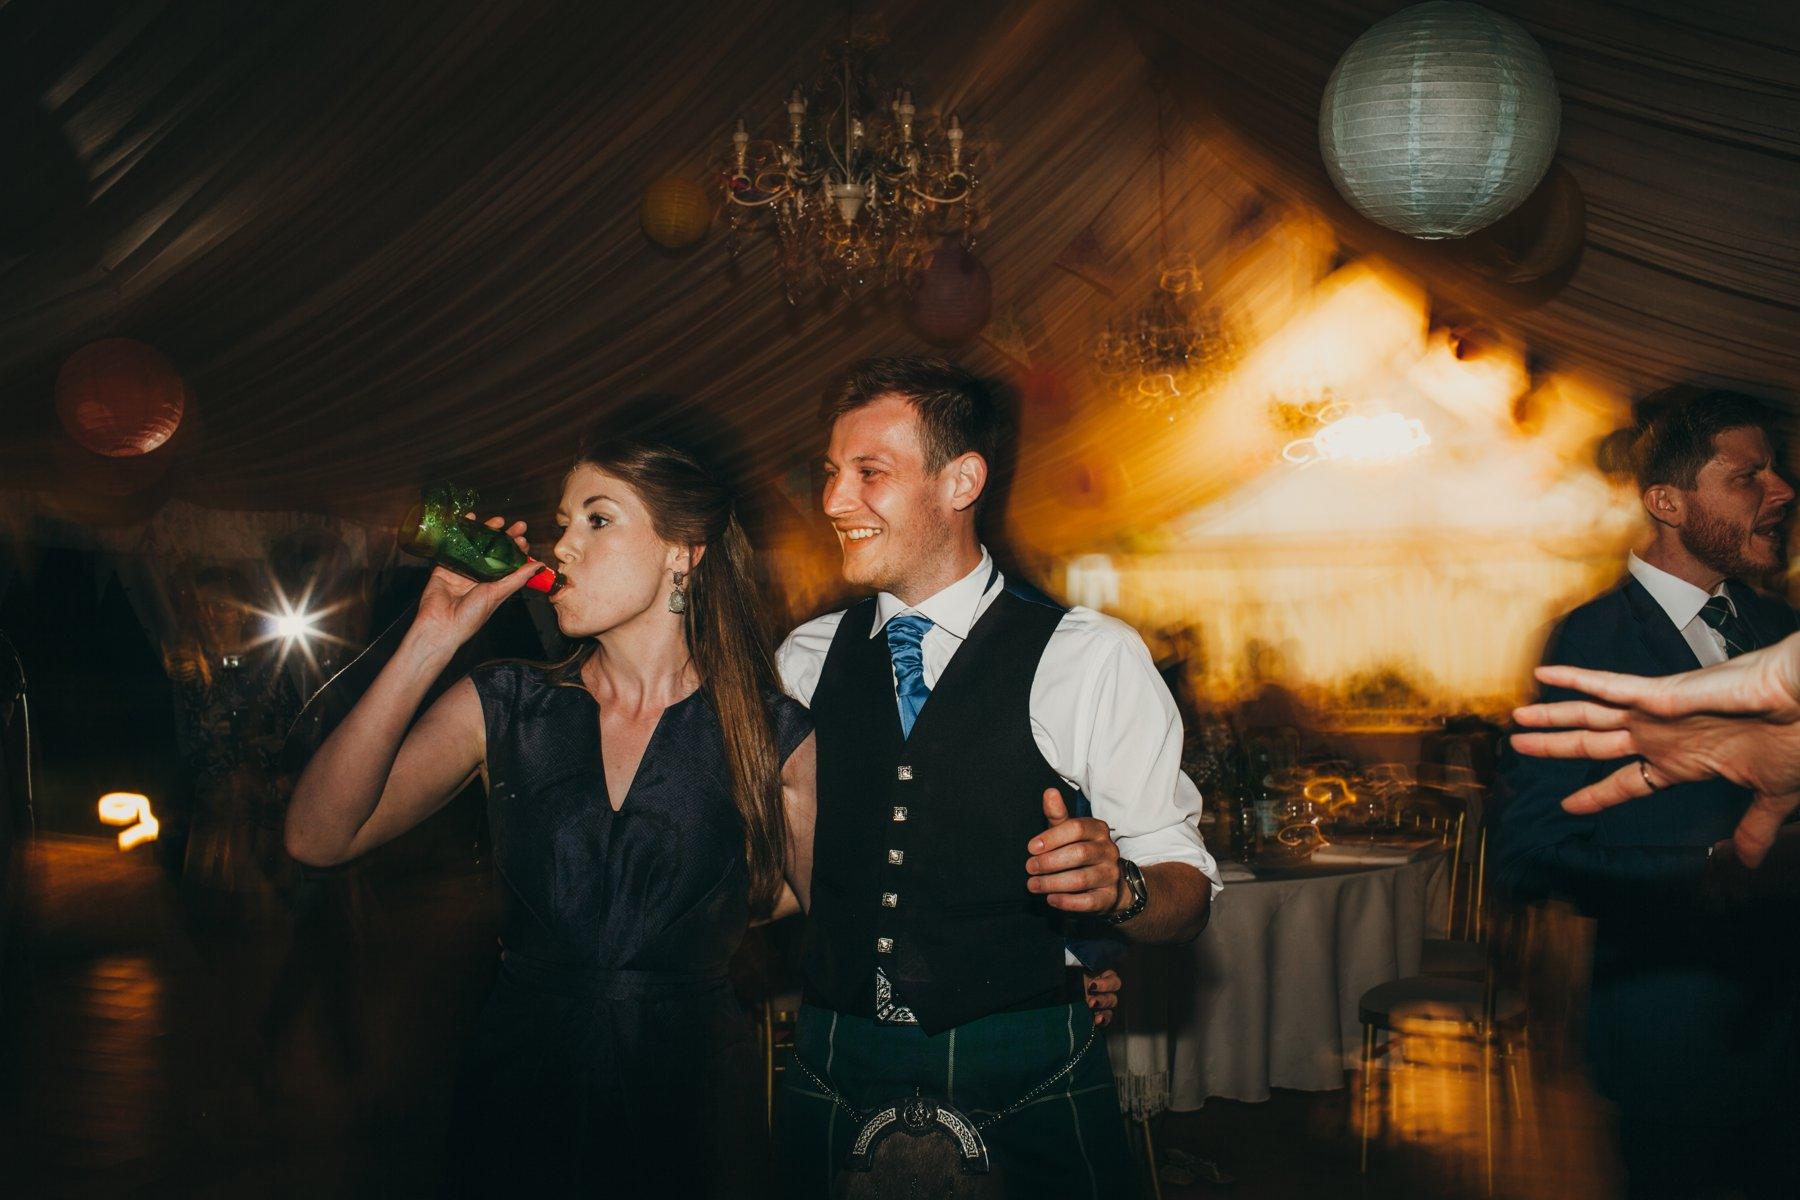 petitmoulin_france_bordeaux_weddings_0131